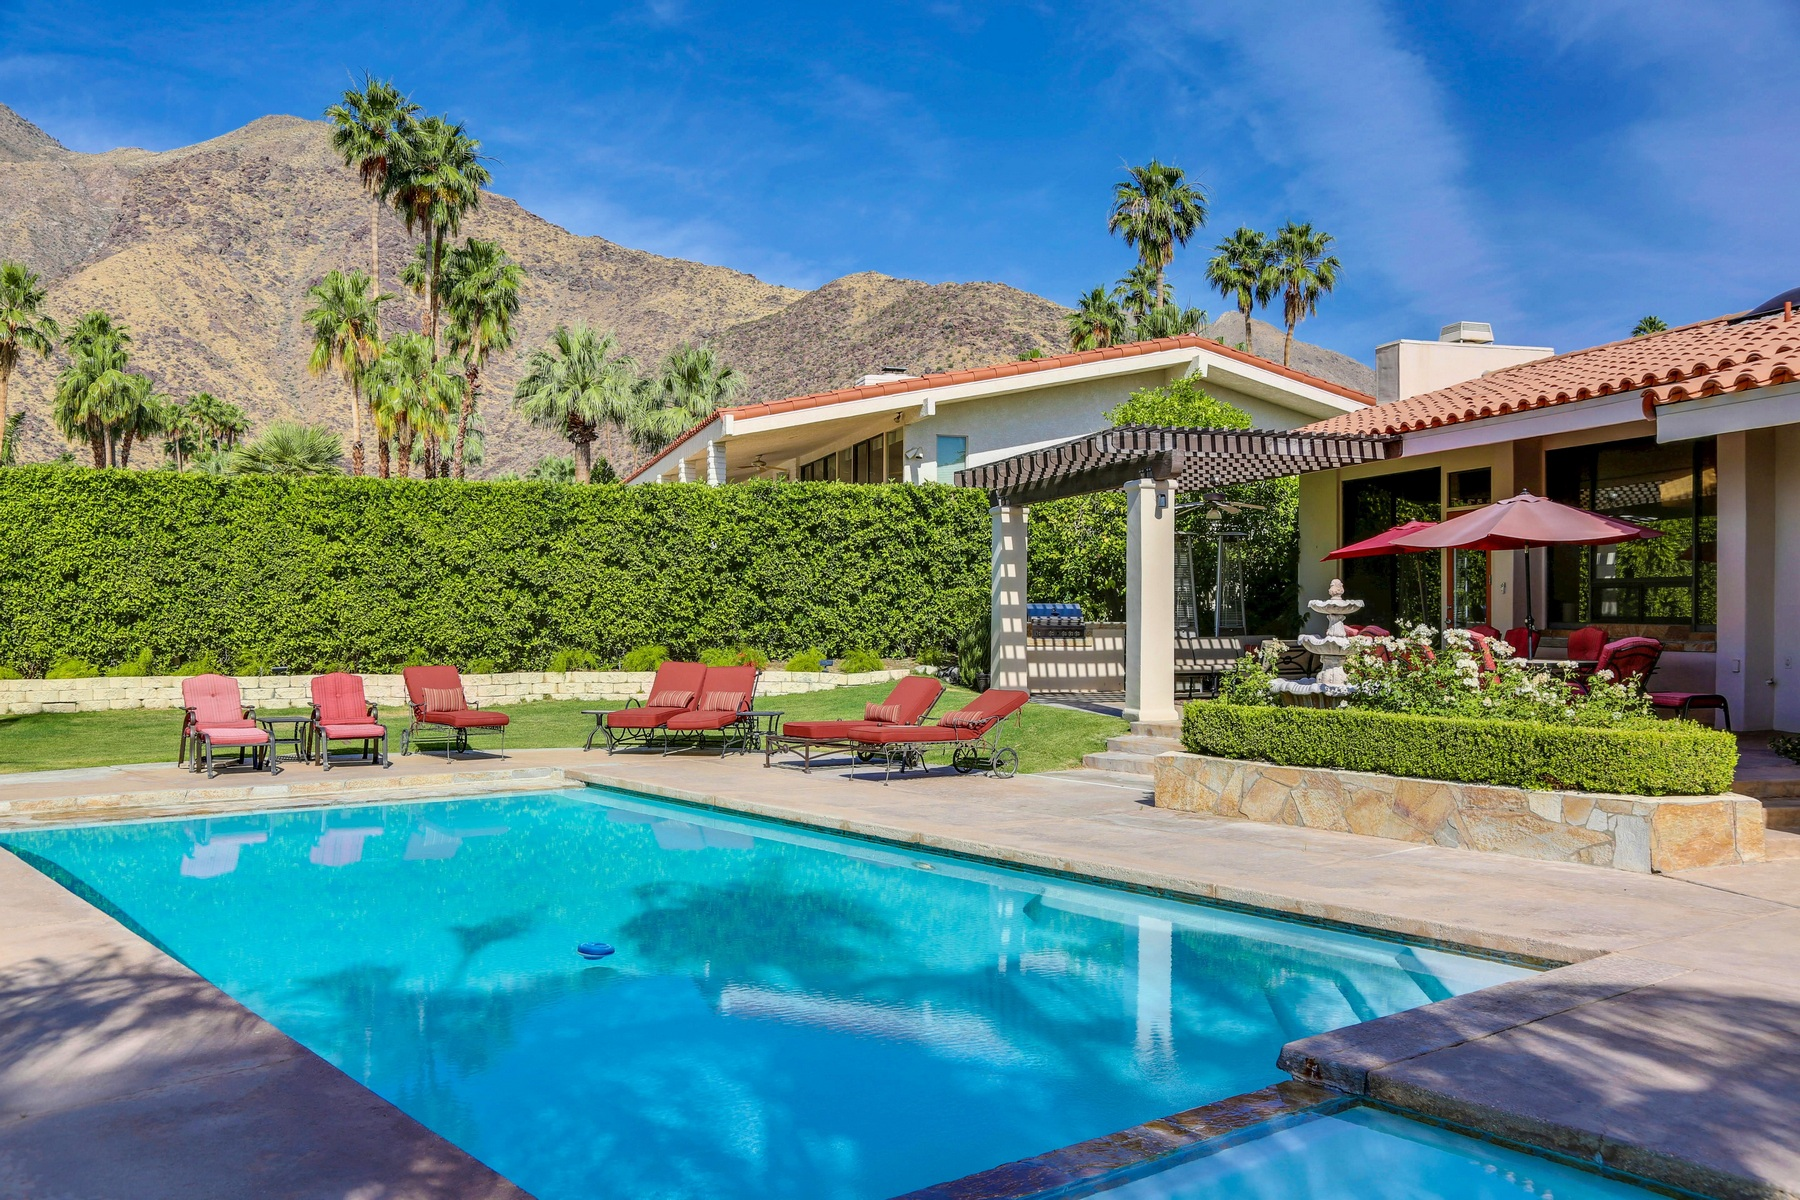 Single Family Home for Sale at 699 Camino Norte Palm Springs, California, 92262 United States